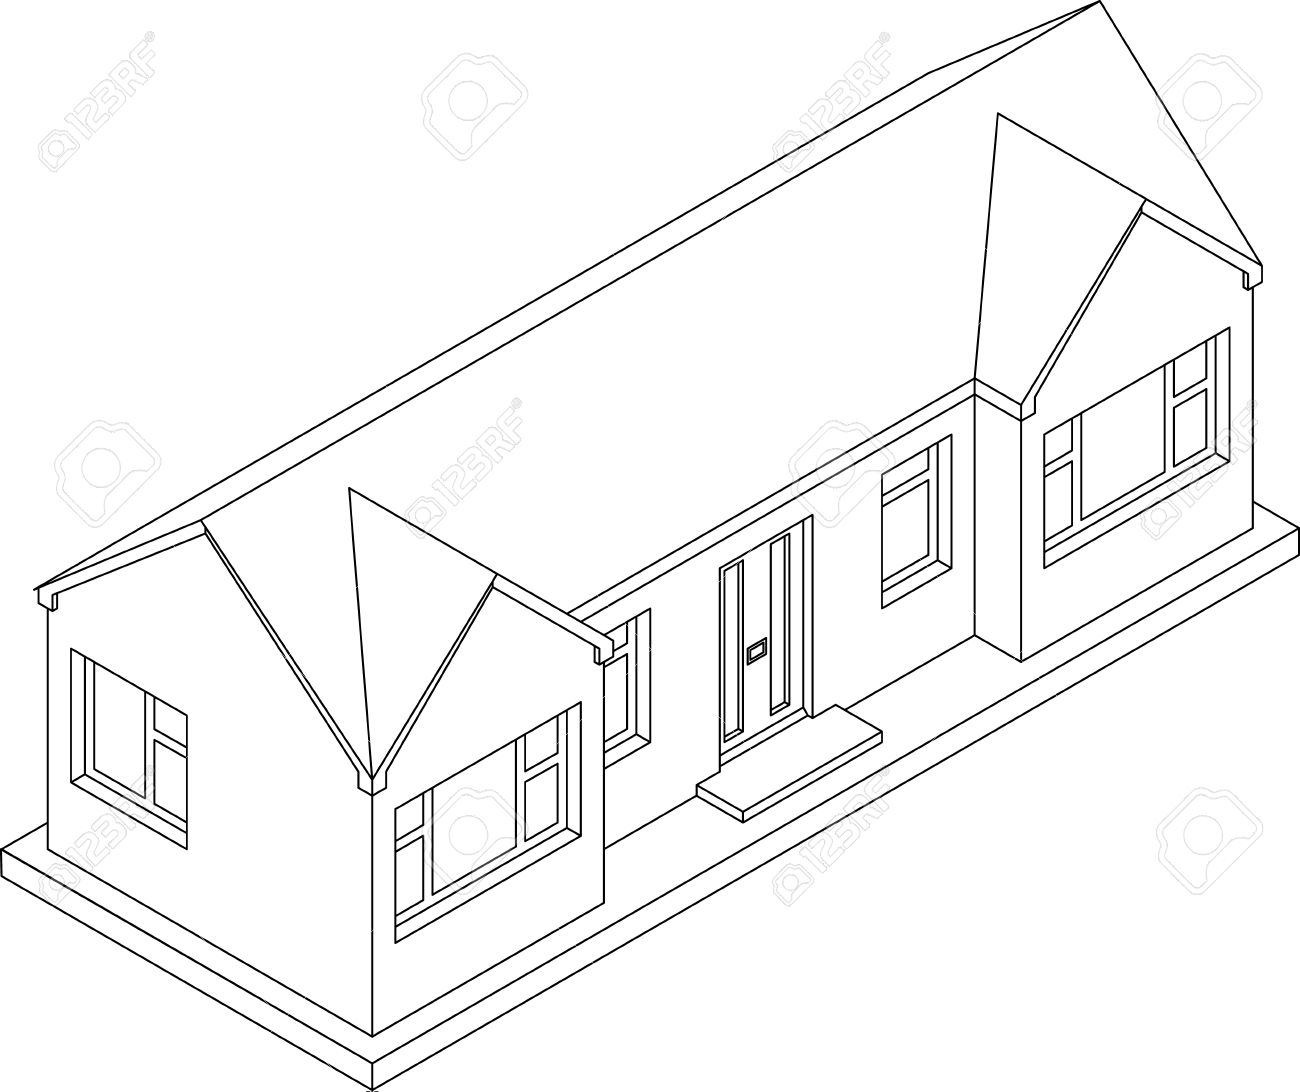 Free Building Drawing